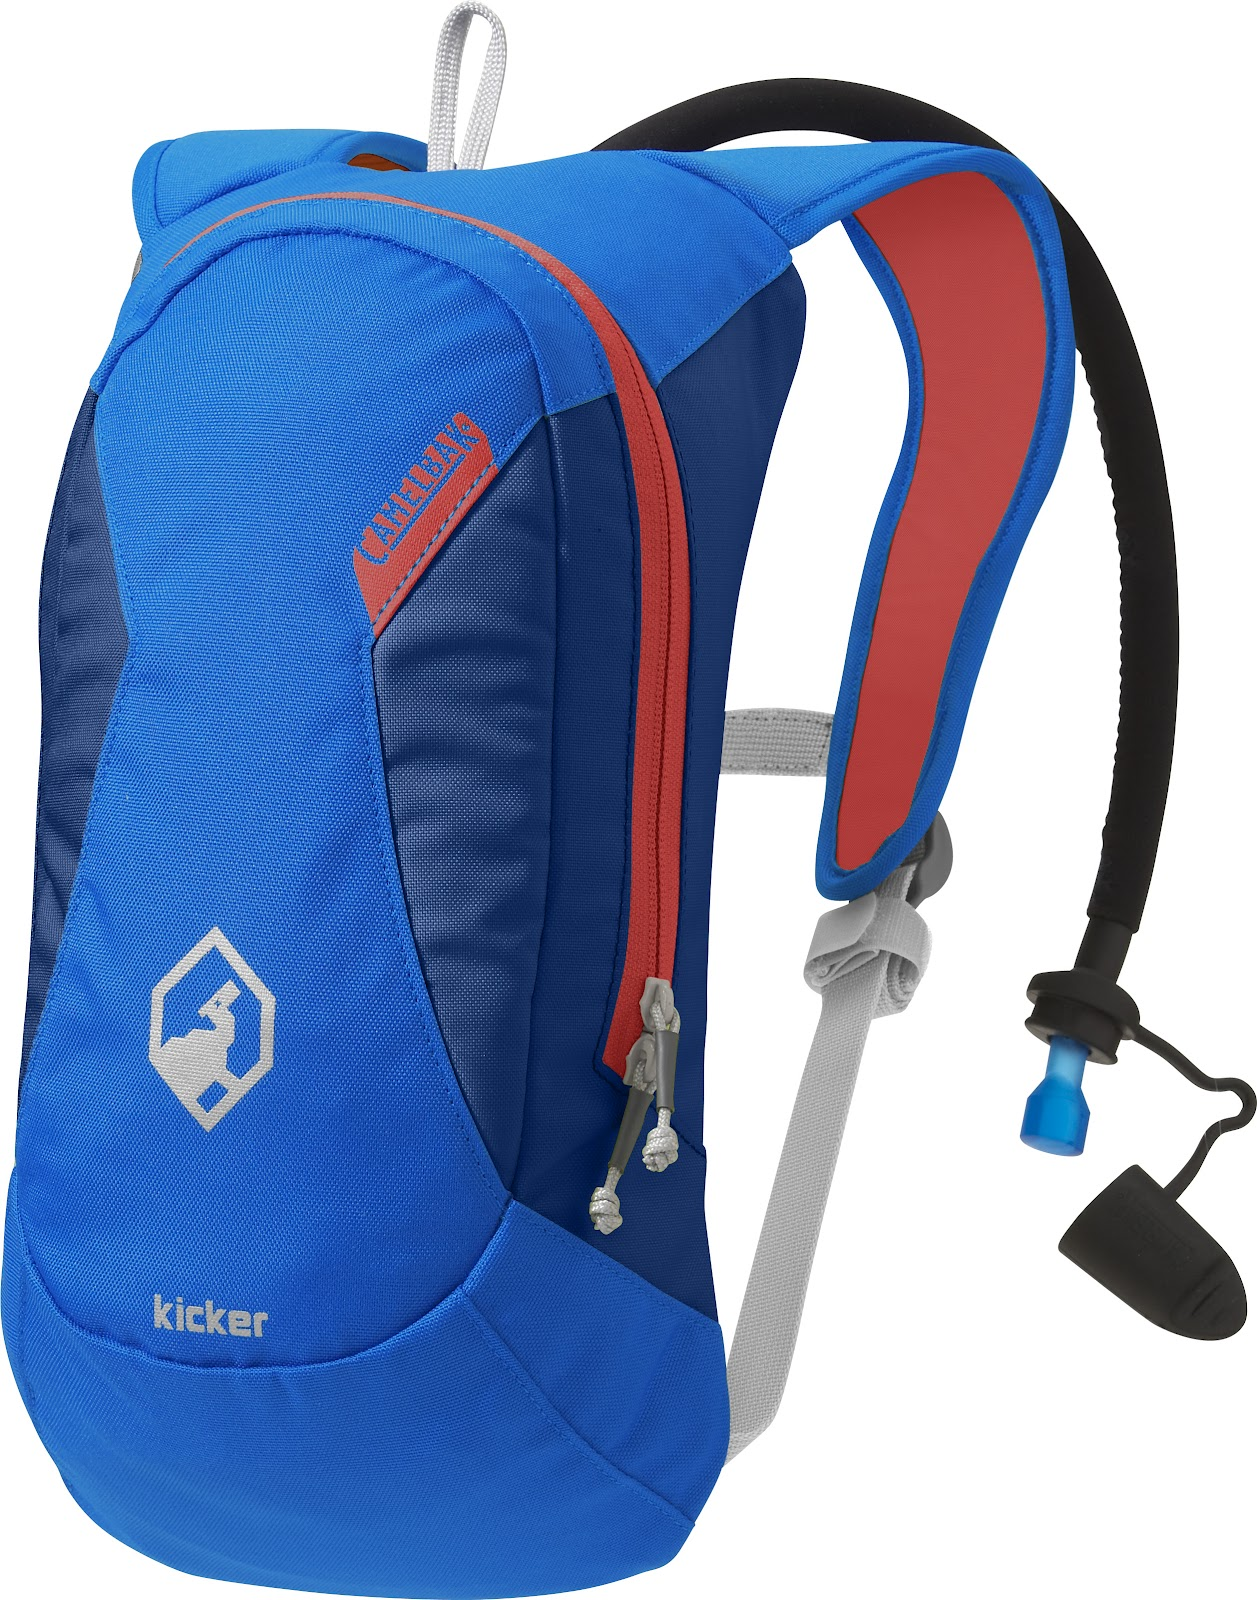 Simplifying Adventures Camelbak Kicker Gear Review Tales of a